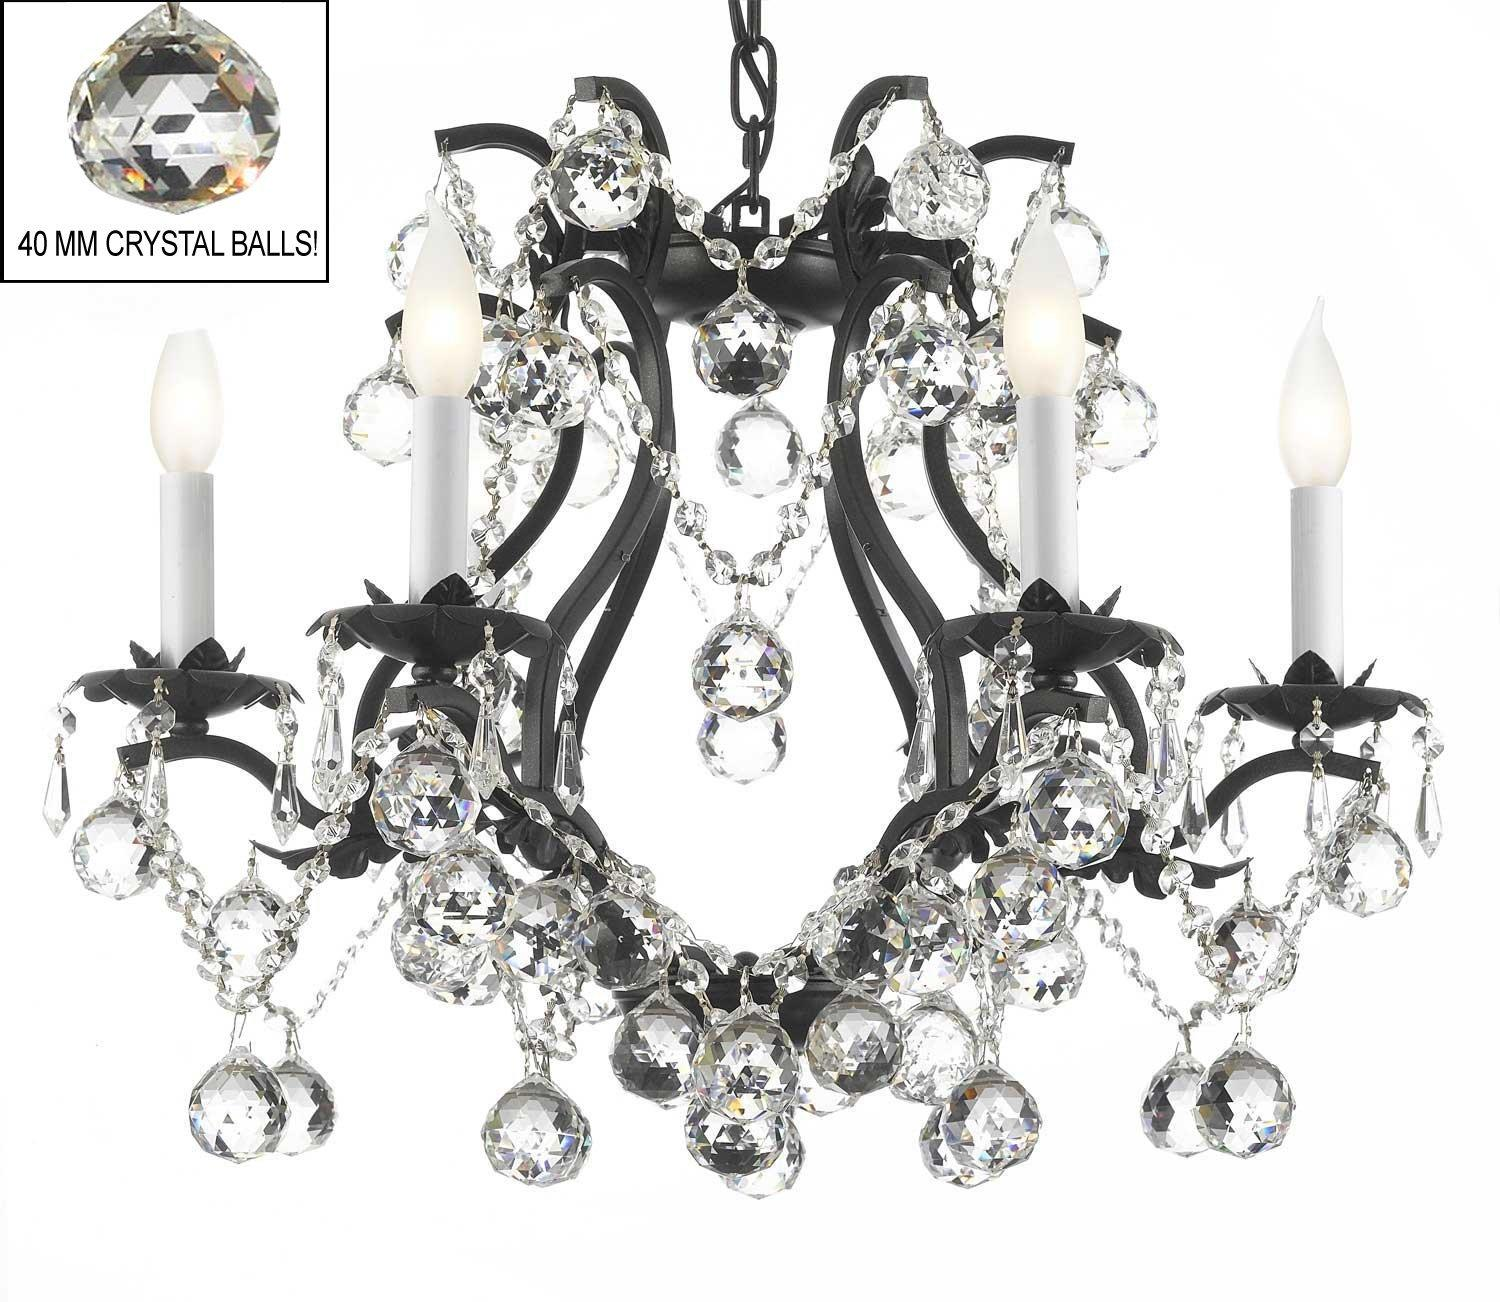 Black Wrought Iron Crystal Chandelier Lights H19 x W20 Dressed With Faceted Crystal Balls